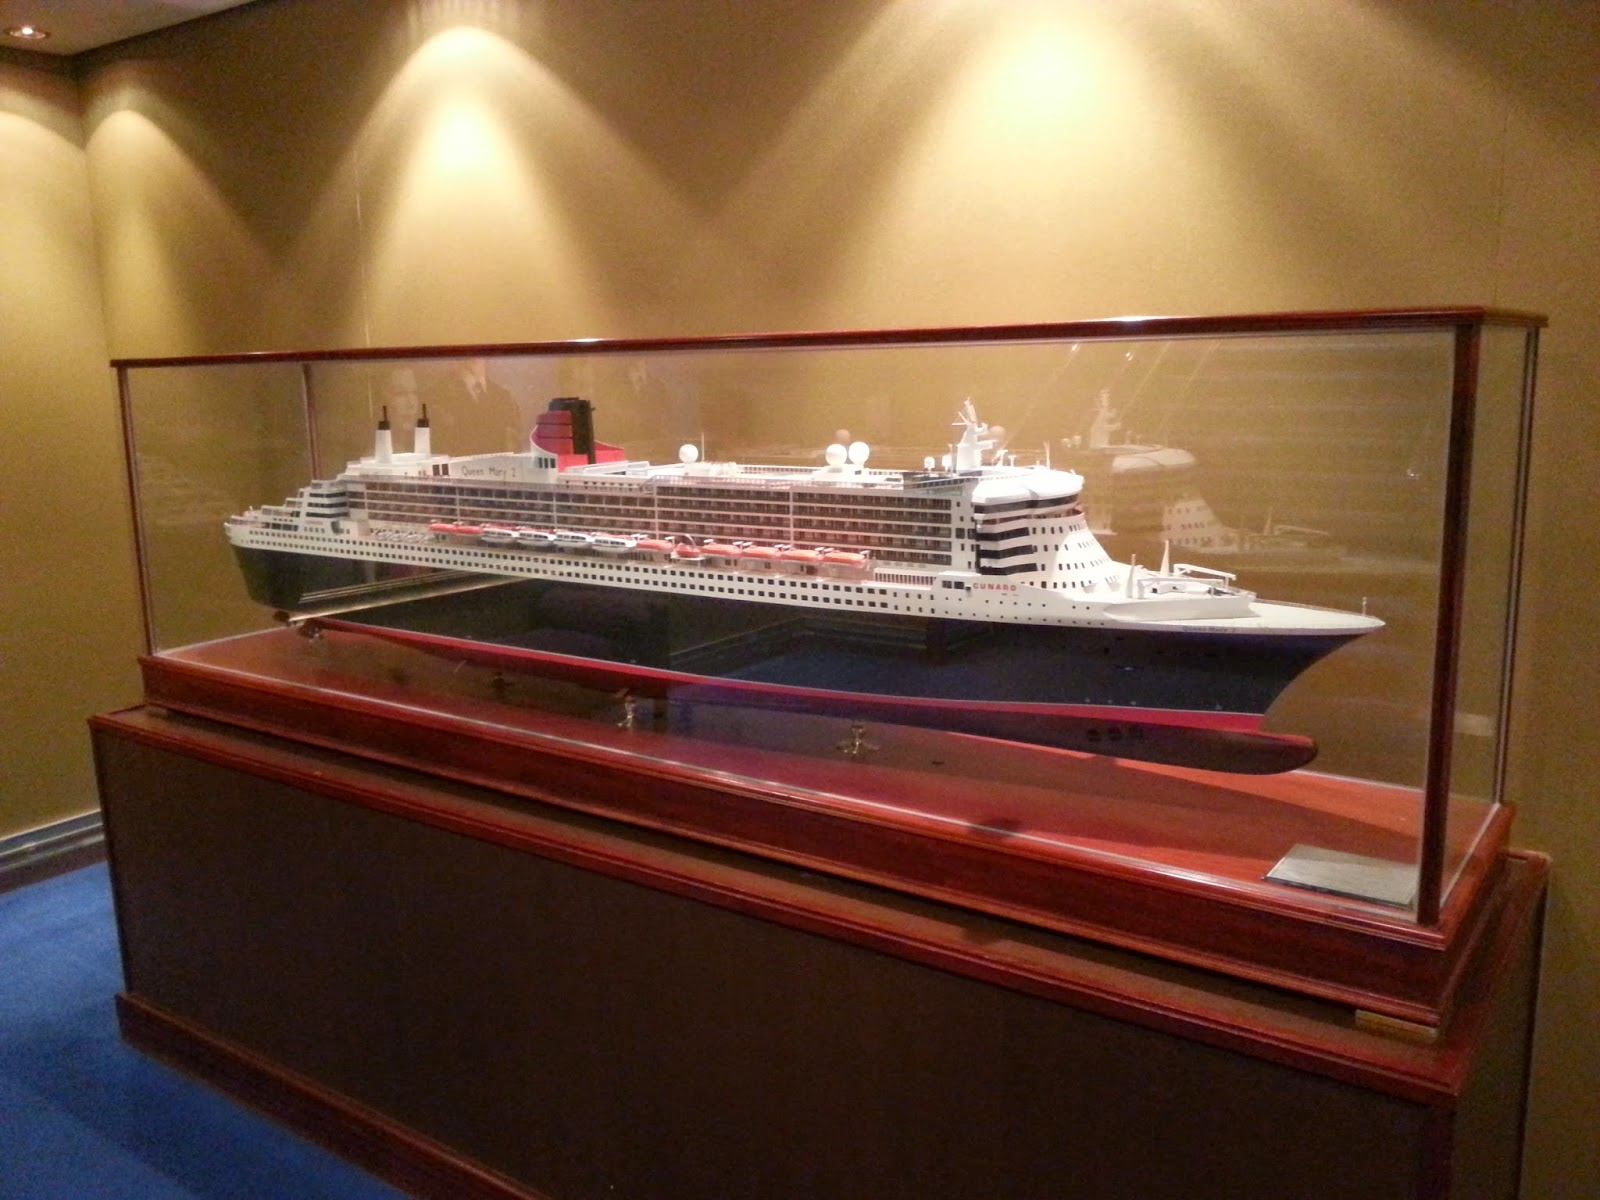 Queen Mary 2 (QM2) - Ship Model